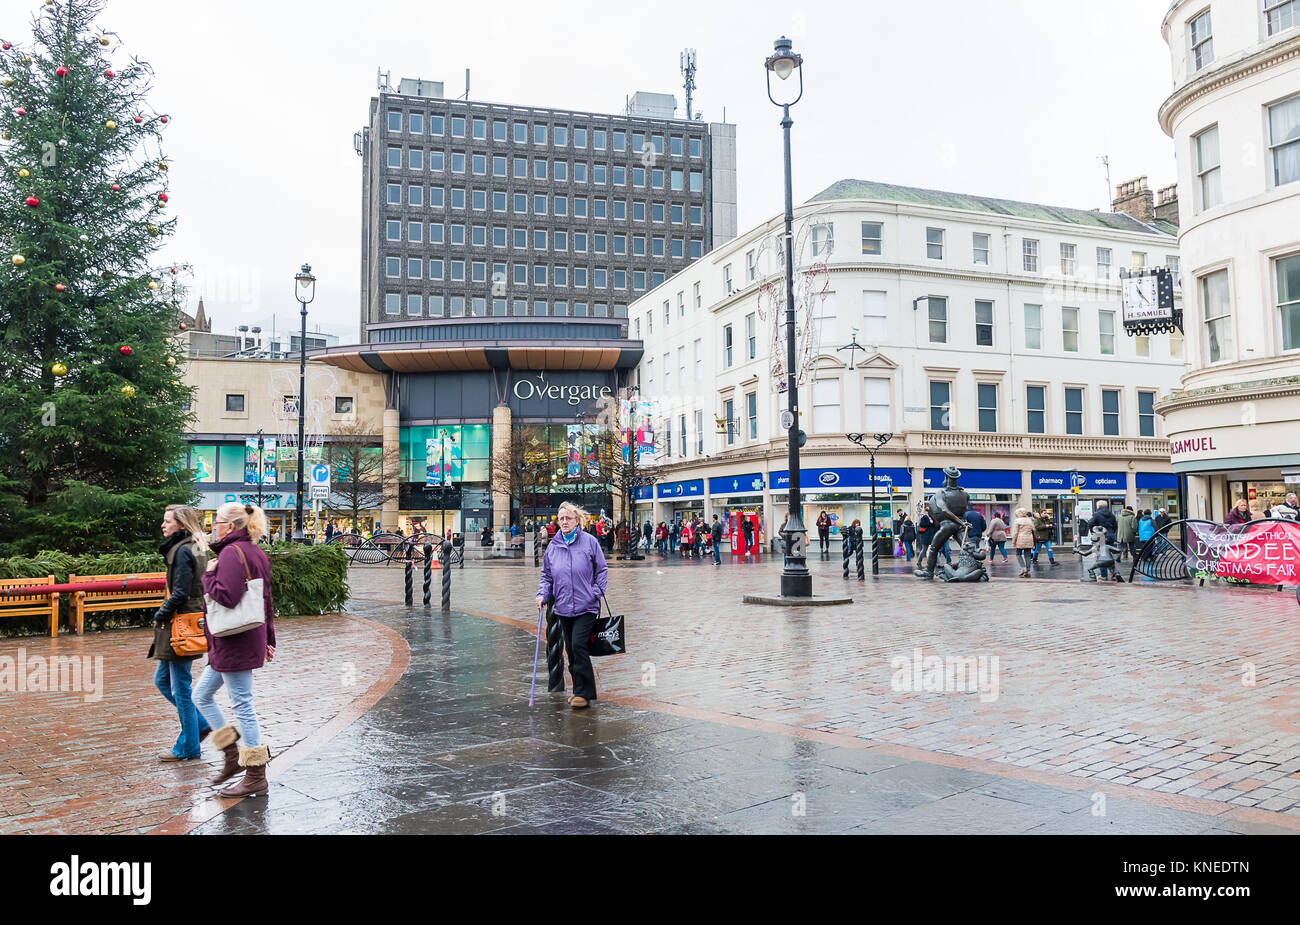 Dundee,Scotland,UK-Dercember 05,2017: The city centre of Dundee with people going about their christmas shopping, Stock Photo